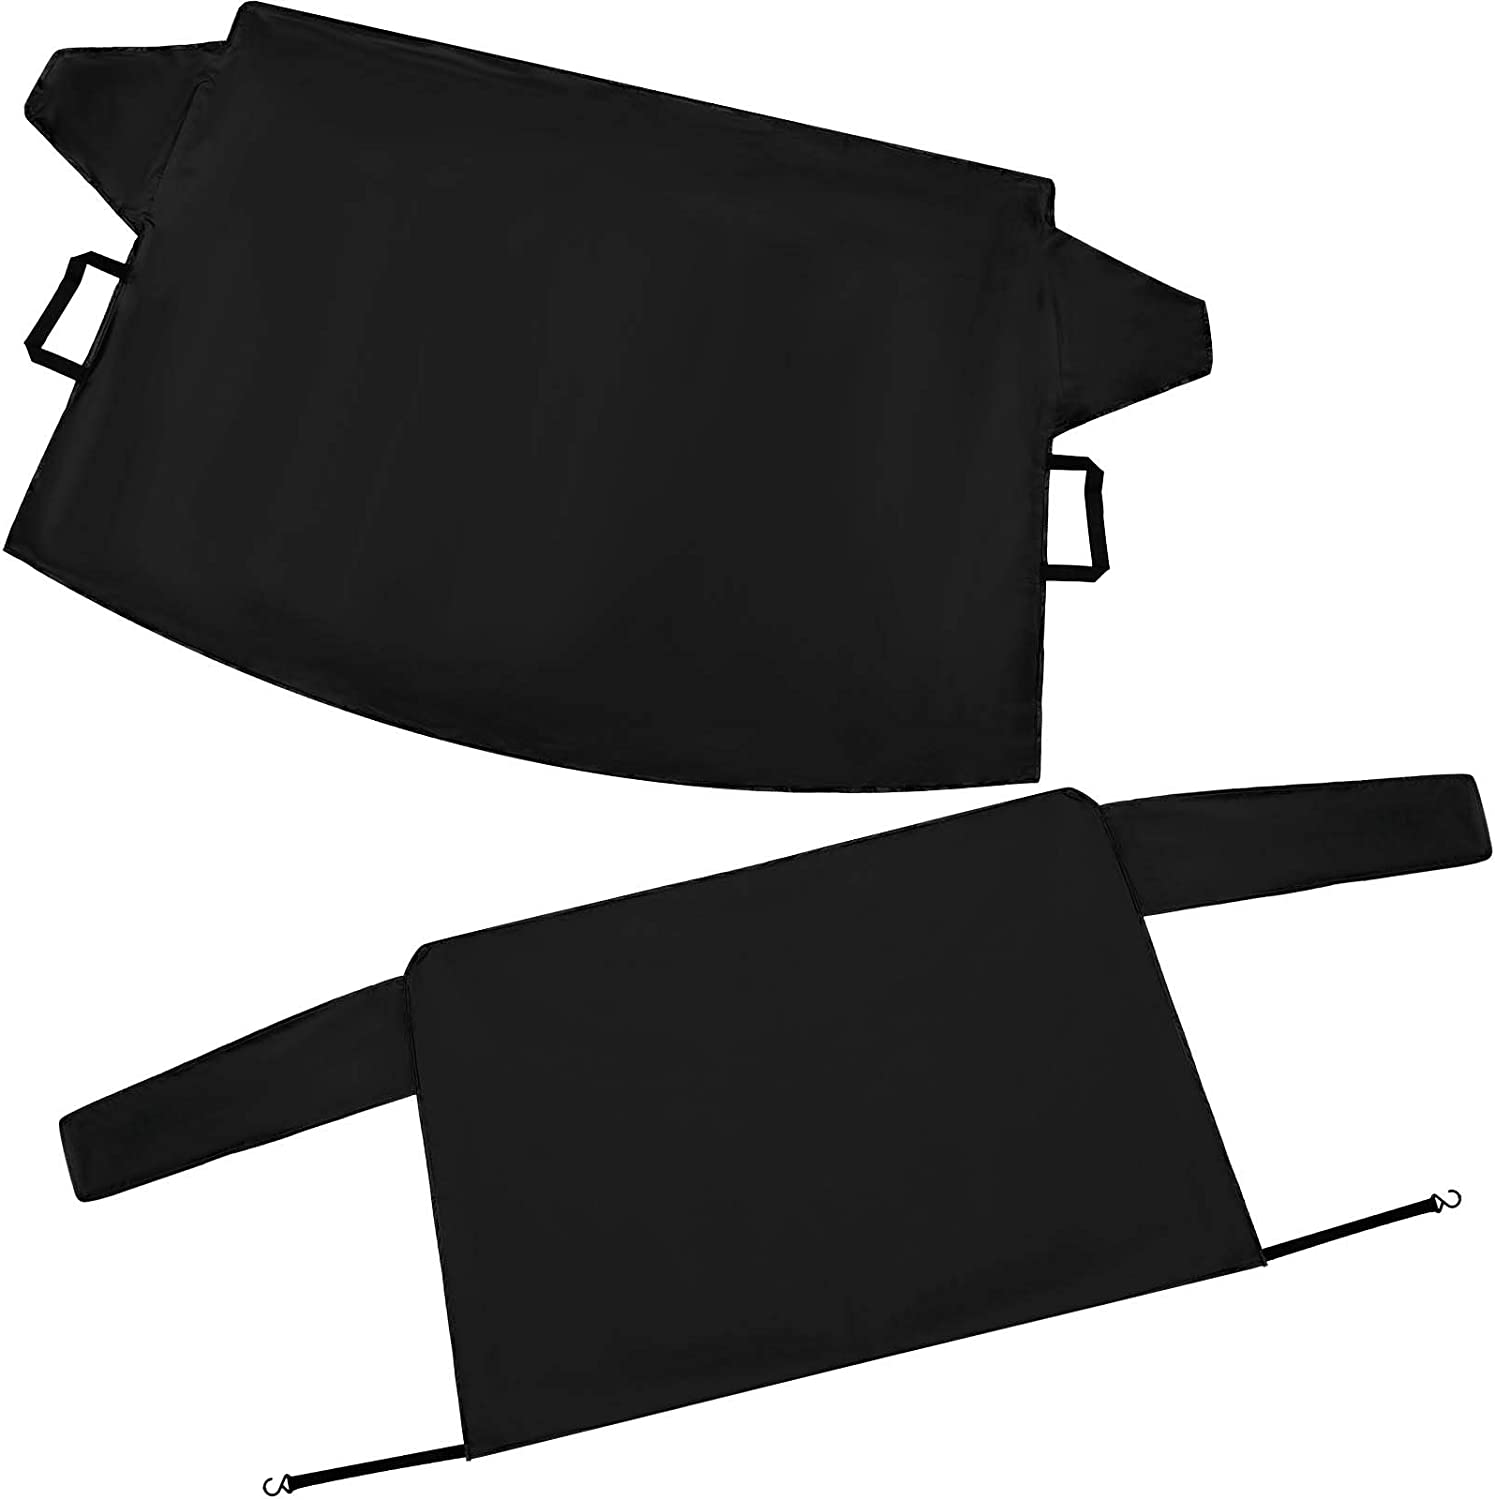 2 Pieces Car Windshield Snow Cover Oxford Frost Shield Vehicle Ice Protector Waterproof Windshield Cover for Most Vehicles Cars Trucks and SUV